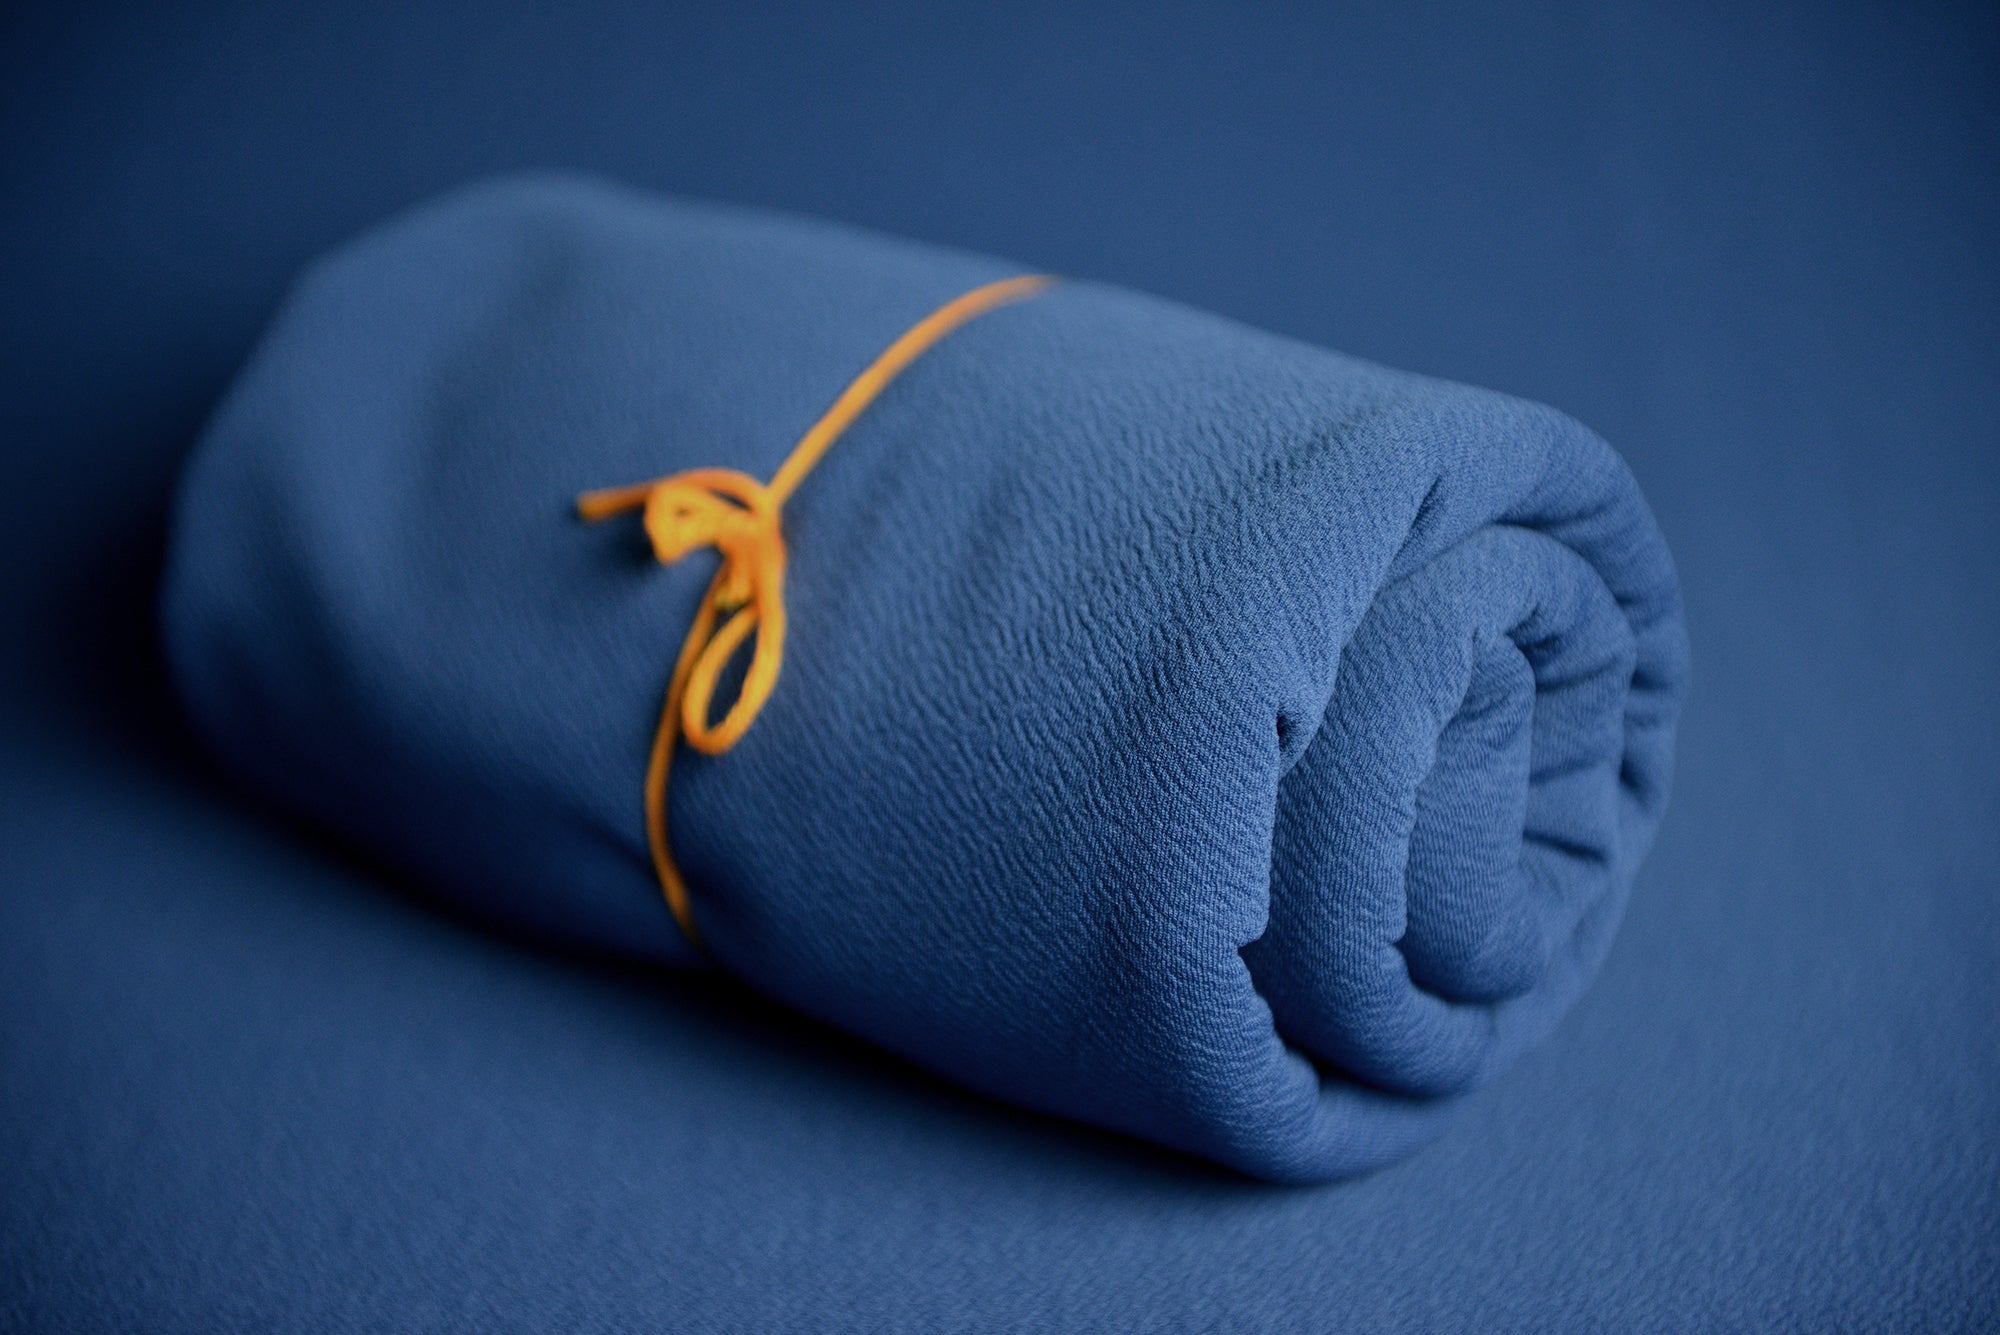 Bean Bag Fabric - Textured - Denim-Newborn Photography Props